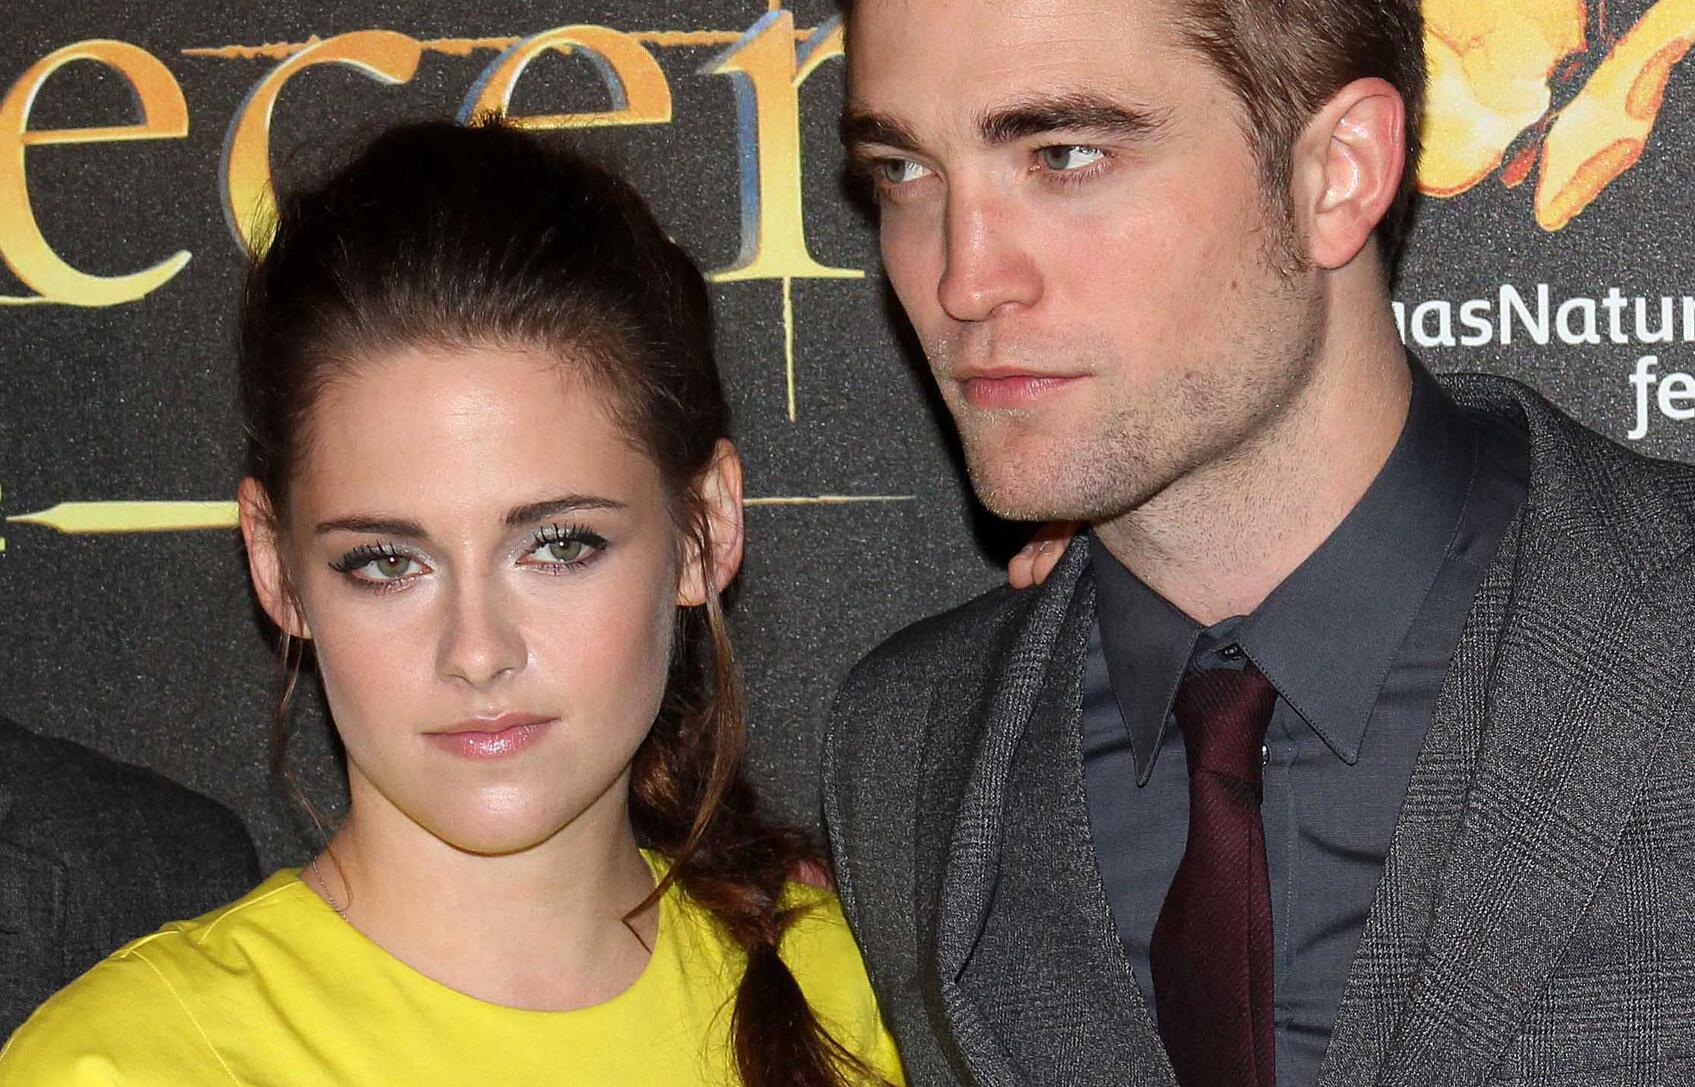 Bild zu Kristen Stewart, Robert Pattinson, Madrid, 2012